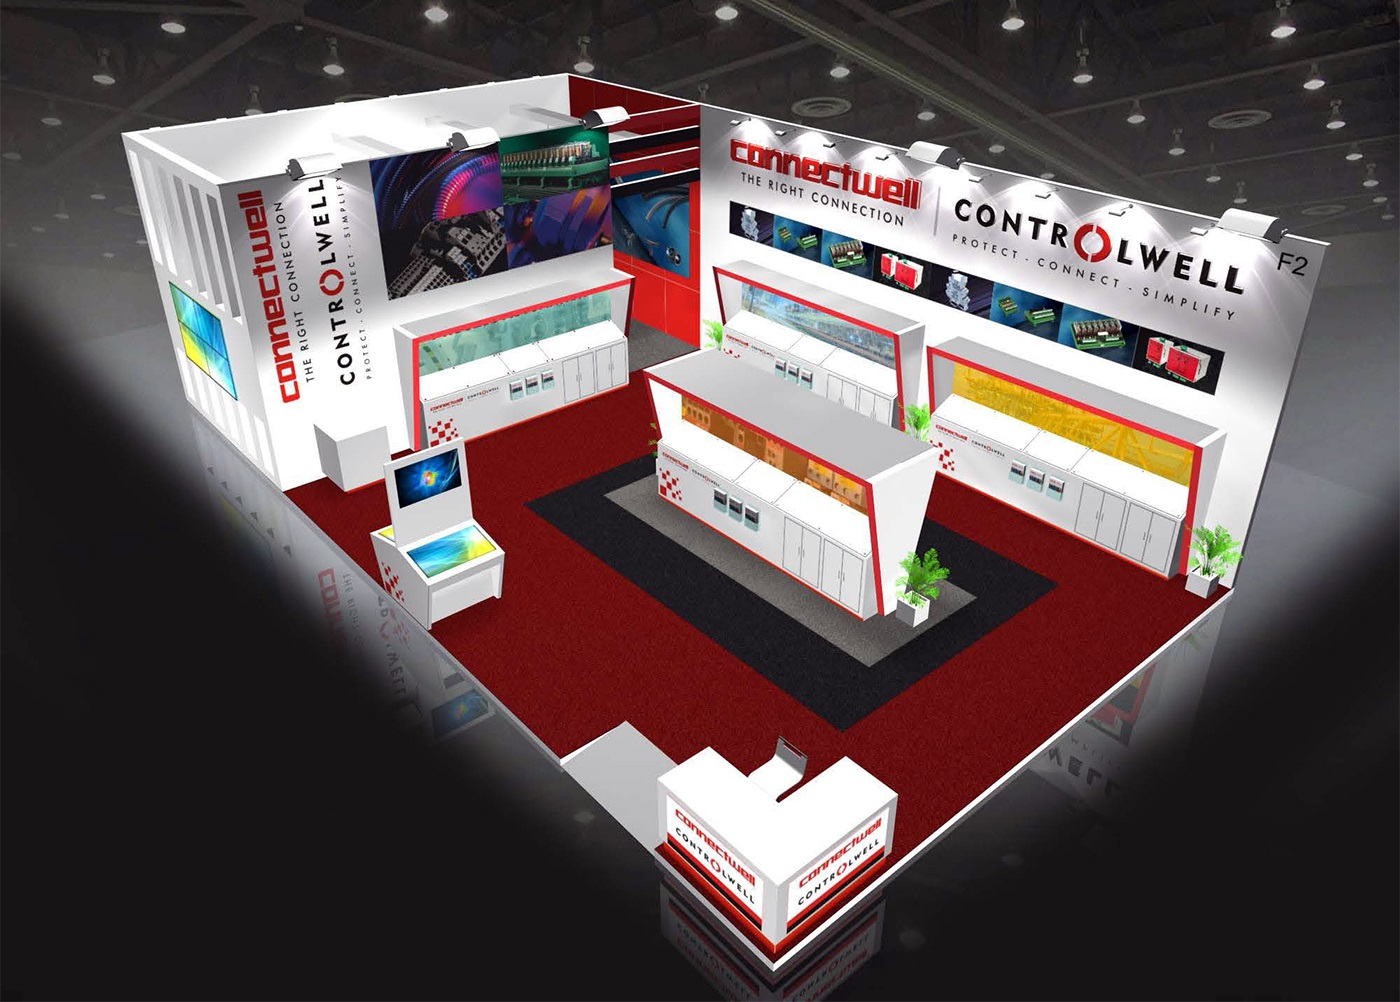 Connectwell participating in Elecrama 2020 Exhibition, Delhi, India